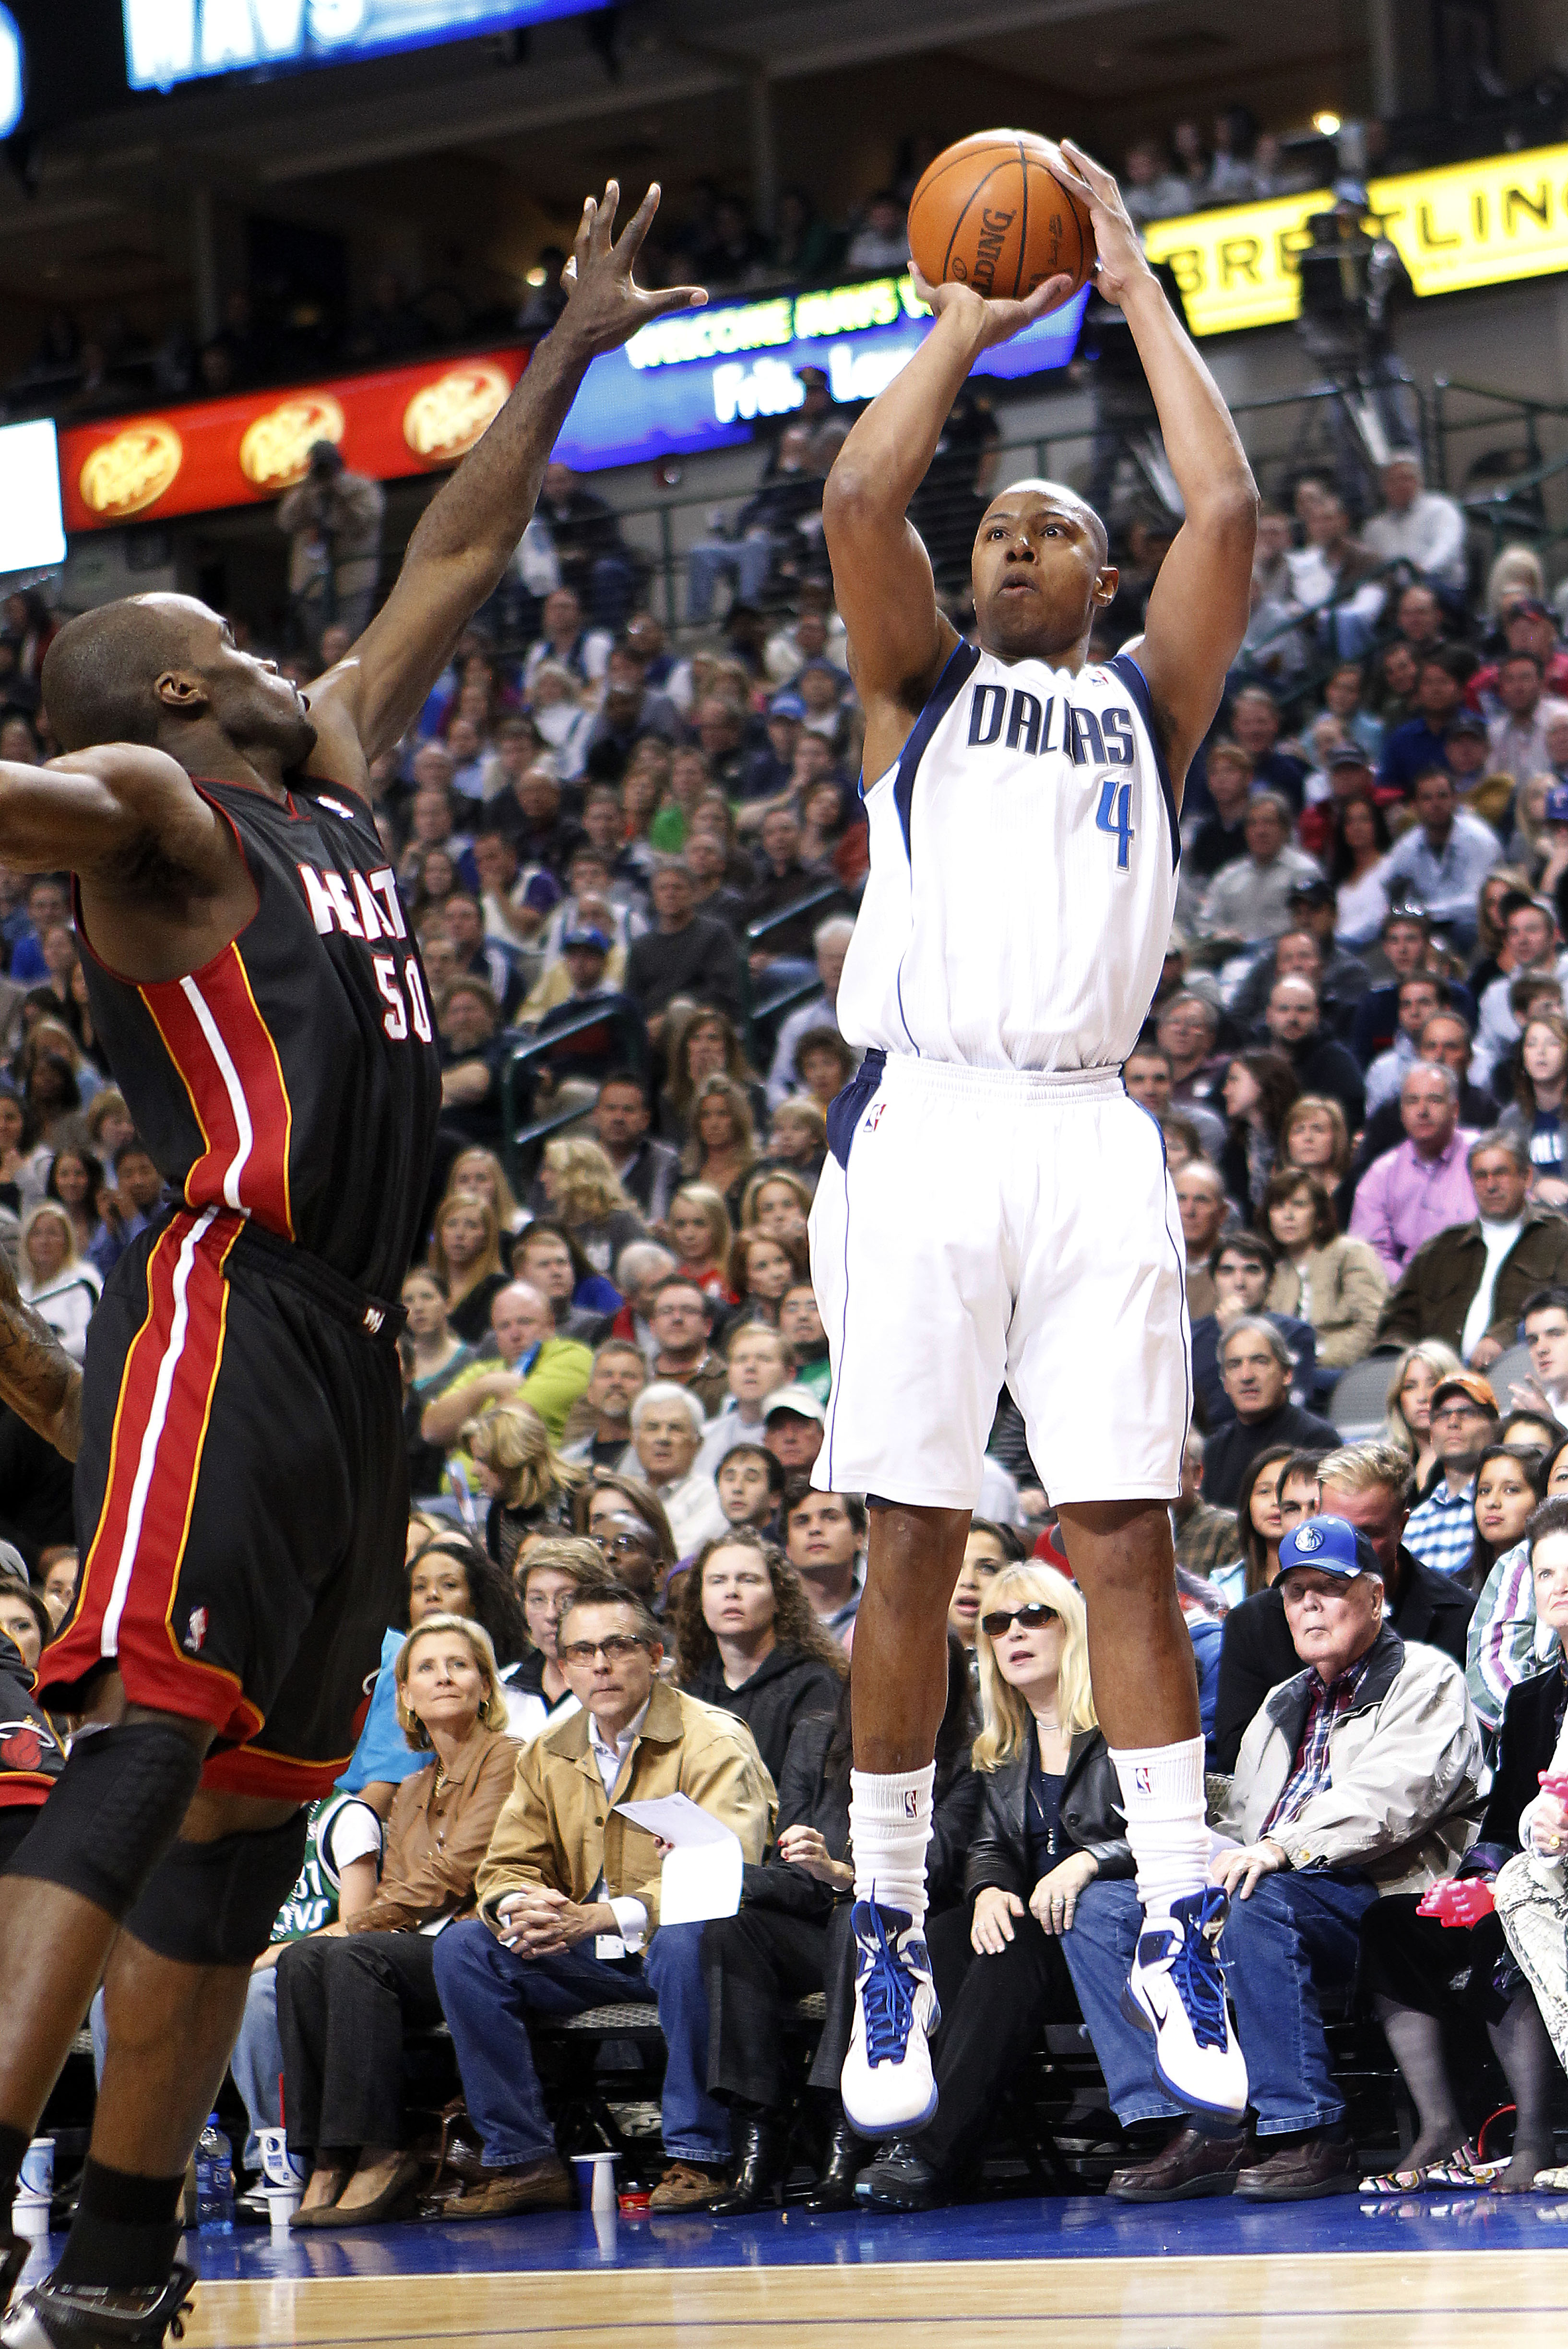 DALLAS - NOVEMBER 27: Caron Butler #4 of the Dallas Mavericks shoots over Joel Anthony #50 of the Miami Heat on November 27, 2010 at the American Airlines Center in Dallas, Texas. NOTE TO USER: User expressly acknowledges and agrees that, by downloading a